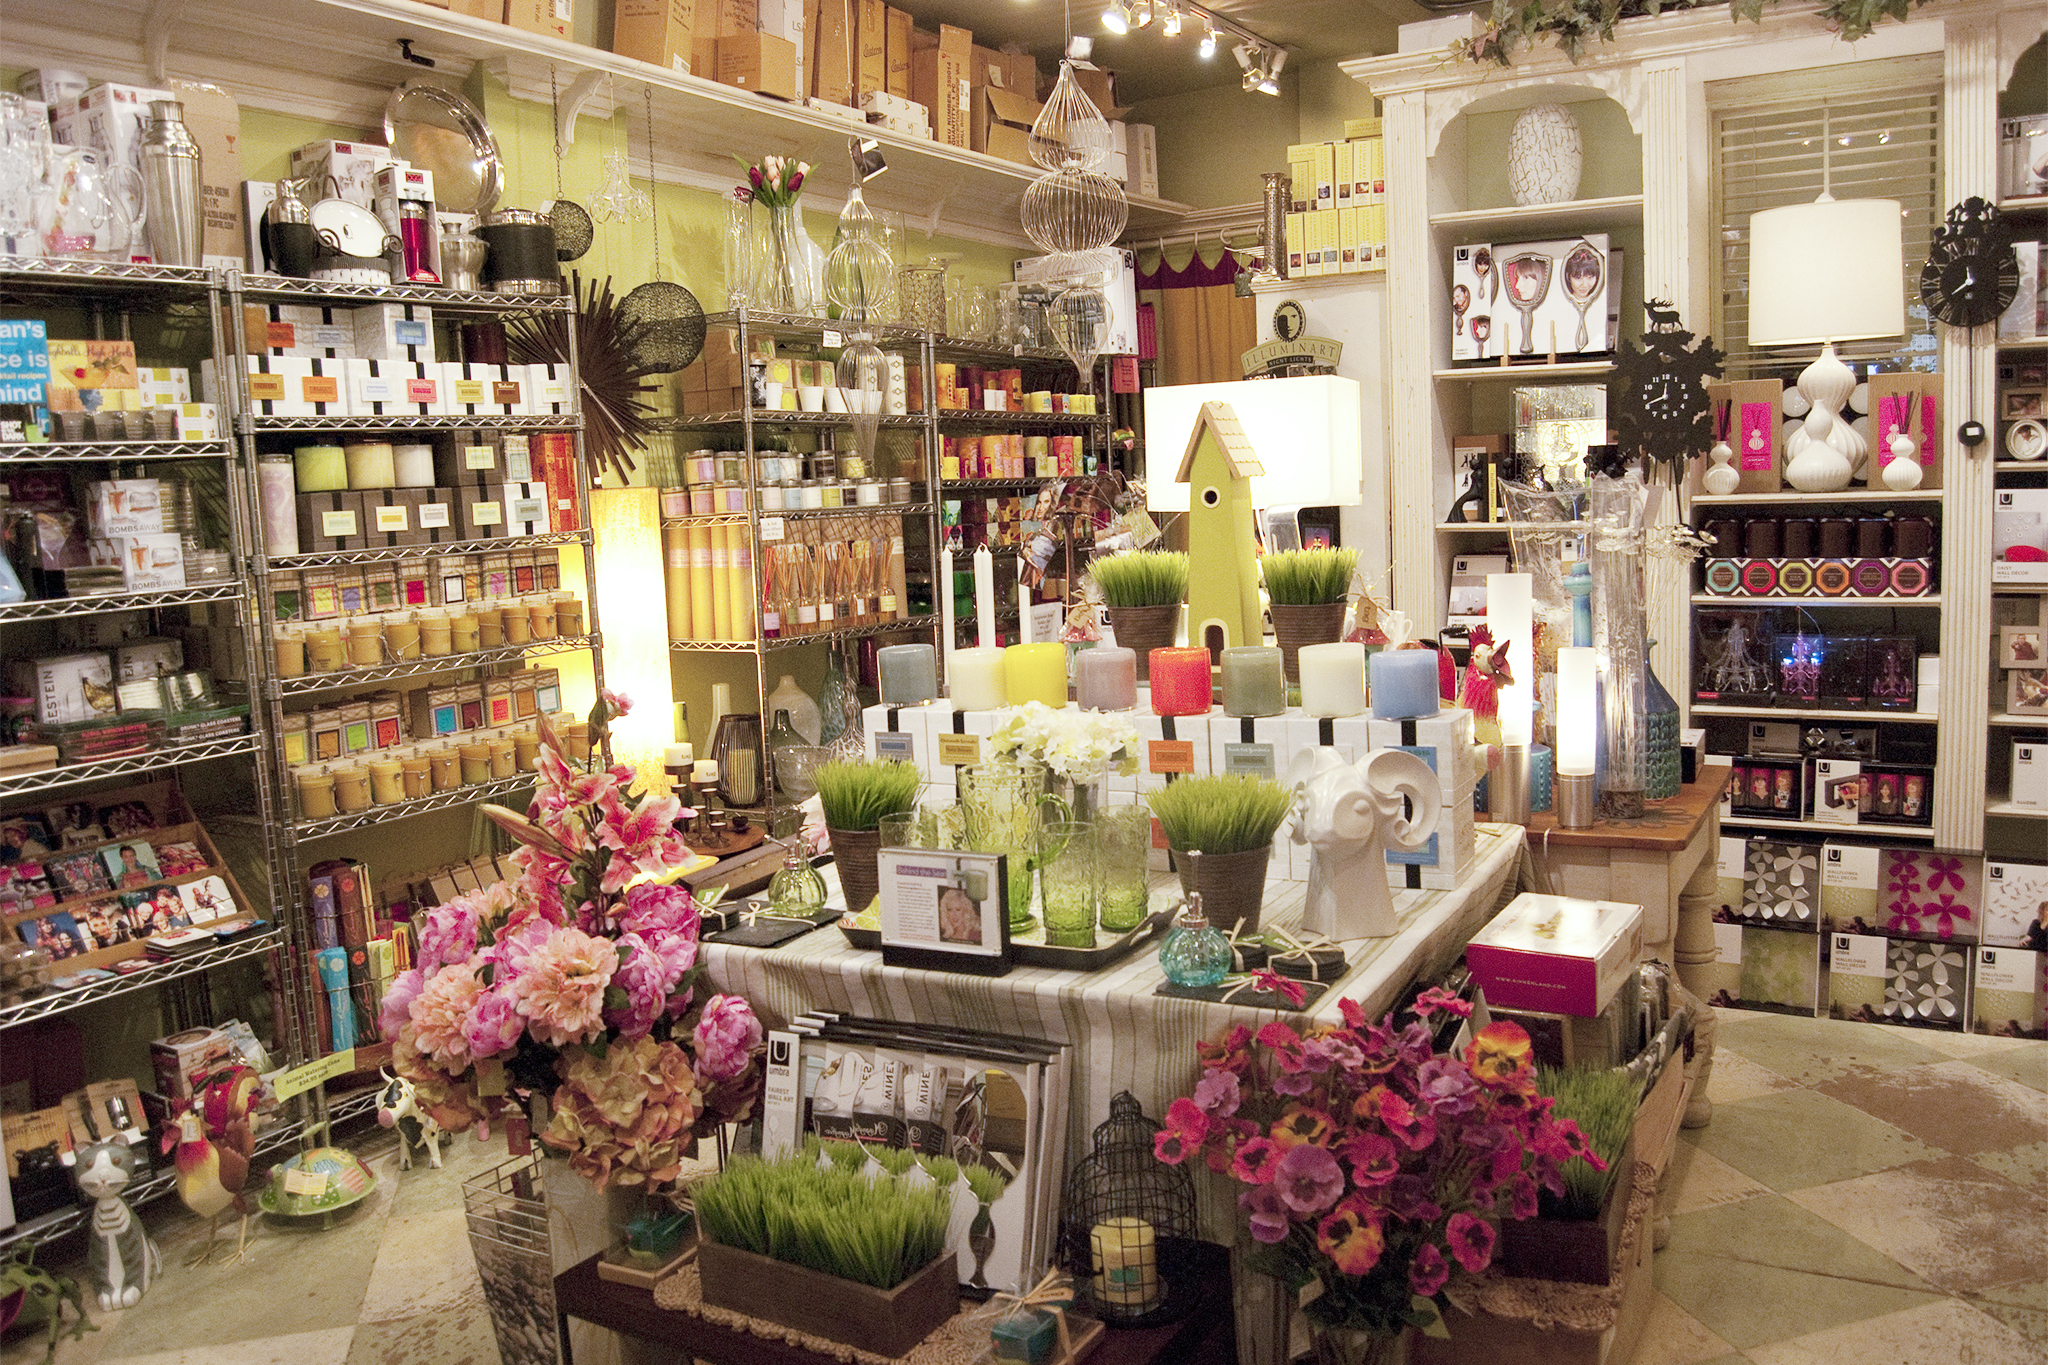 Home decor stores in nyc for decorating ideas and home furnishings - Boutique deco new york ...